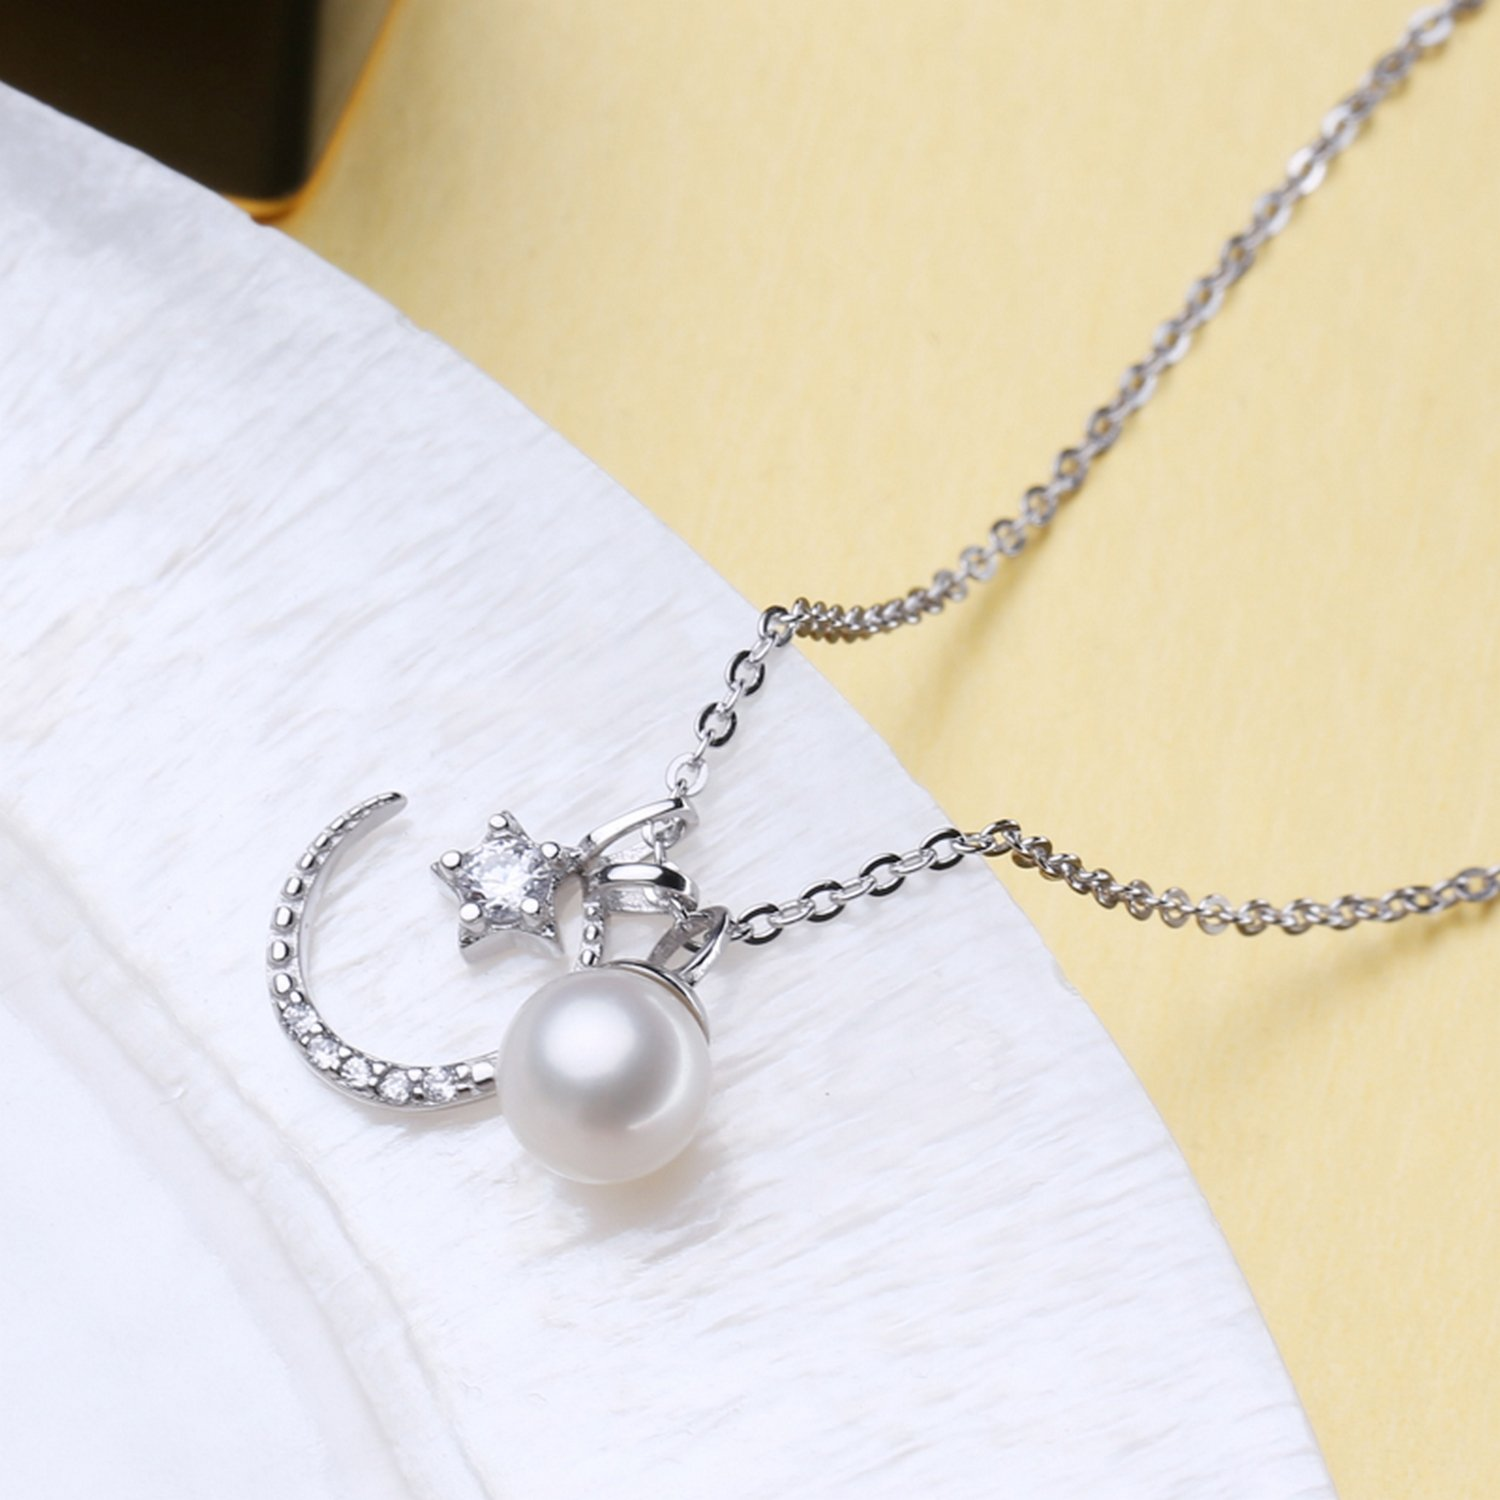 CS-DB Jewelry Silver Star Moon Pearl Chain Charm Pendants Necklaces